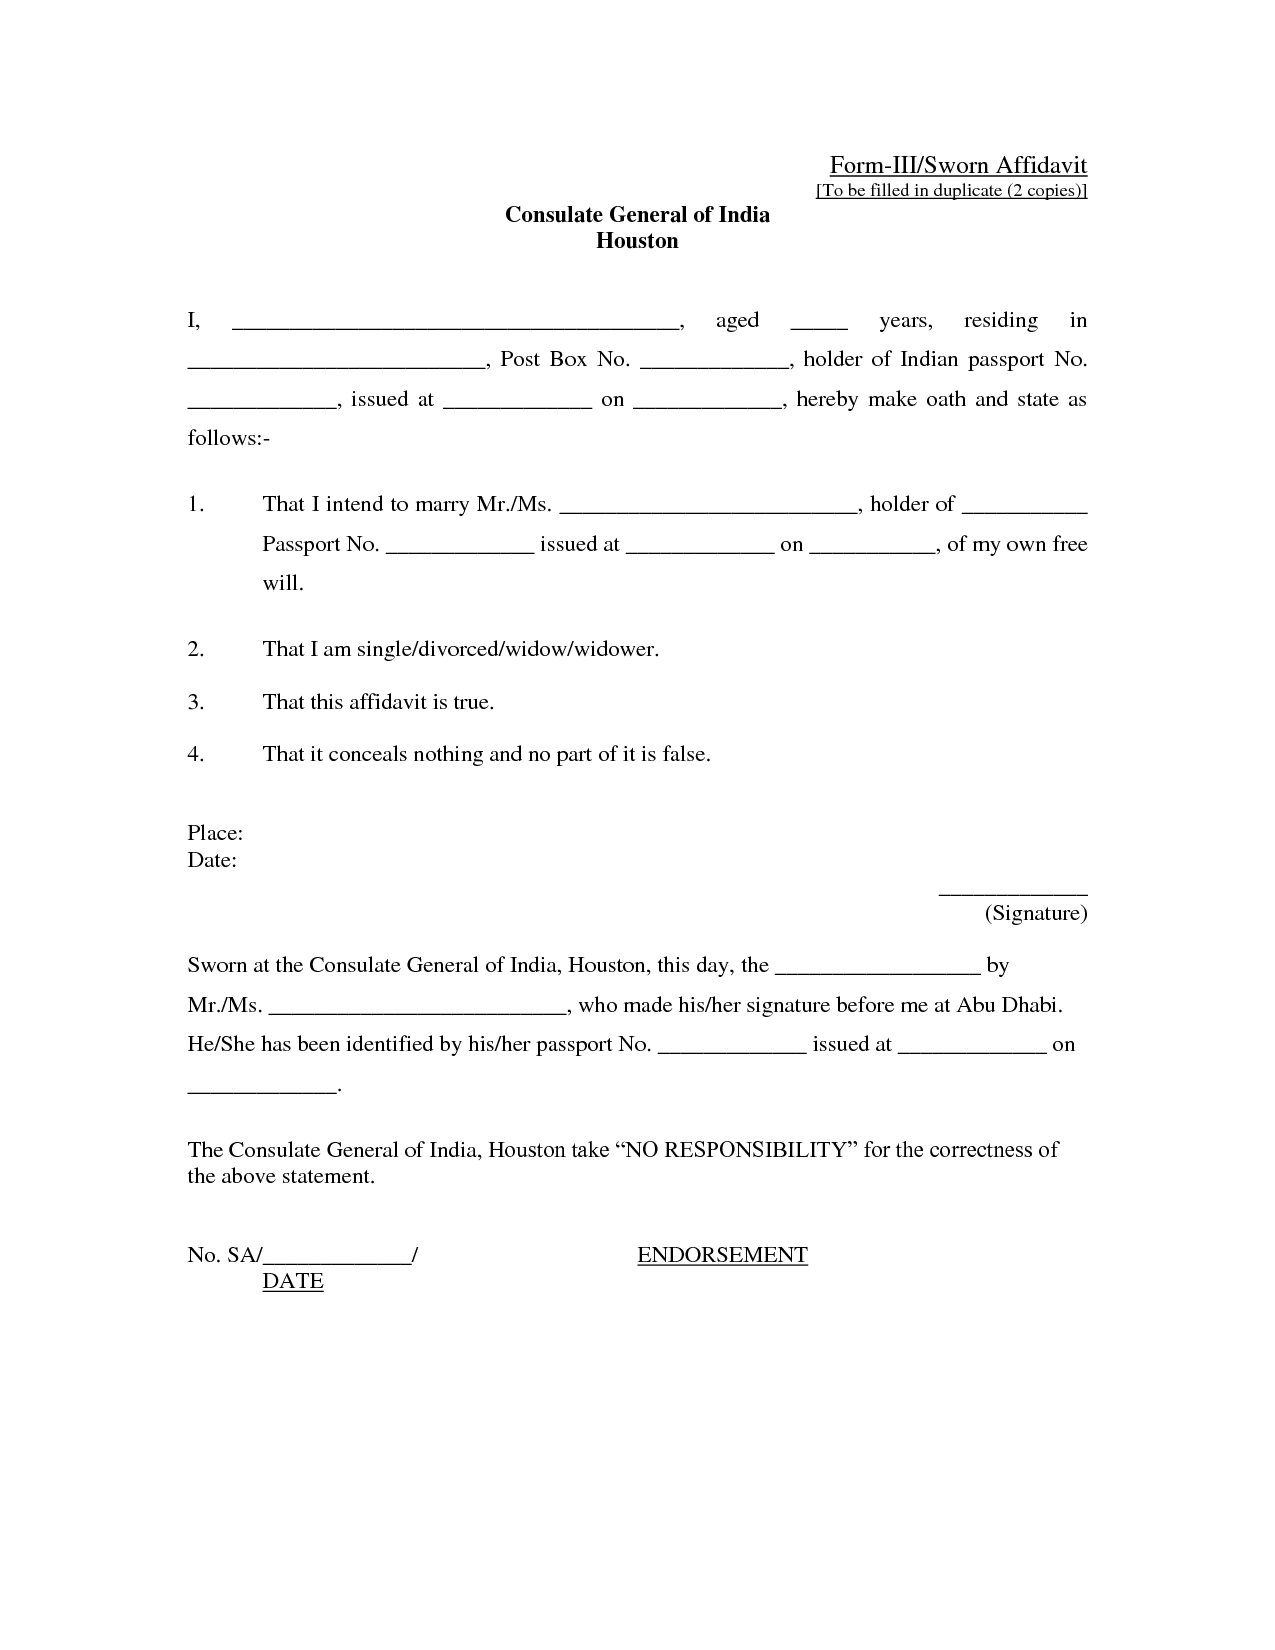 Free affidavit form sample pdf word affidavit form sample daily affidavit form sample altavistaventures Choice Image